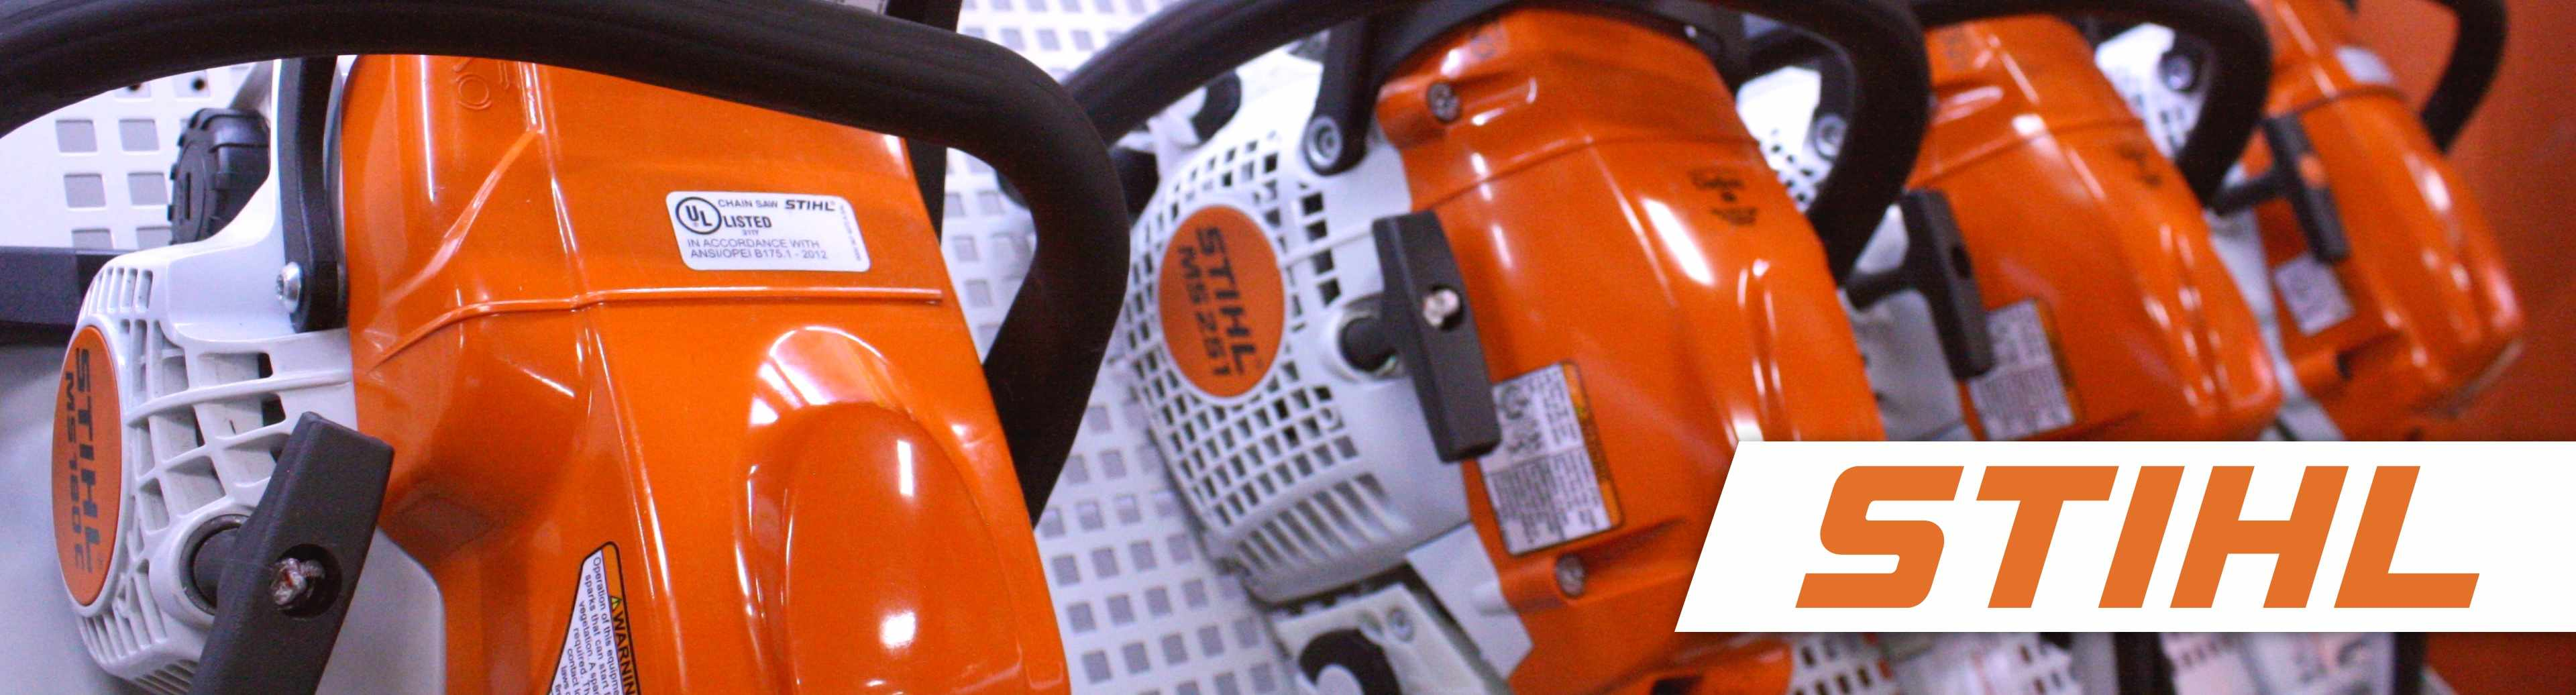 Stihl chainsaws at Gladieux Home Center with Stihl logo